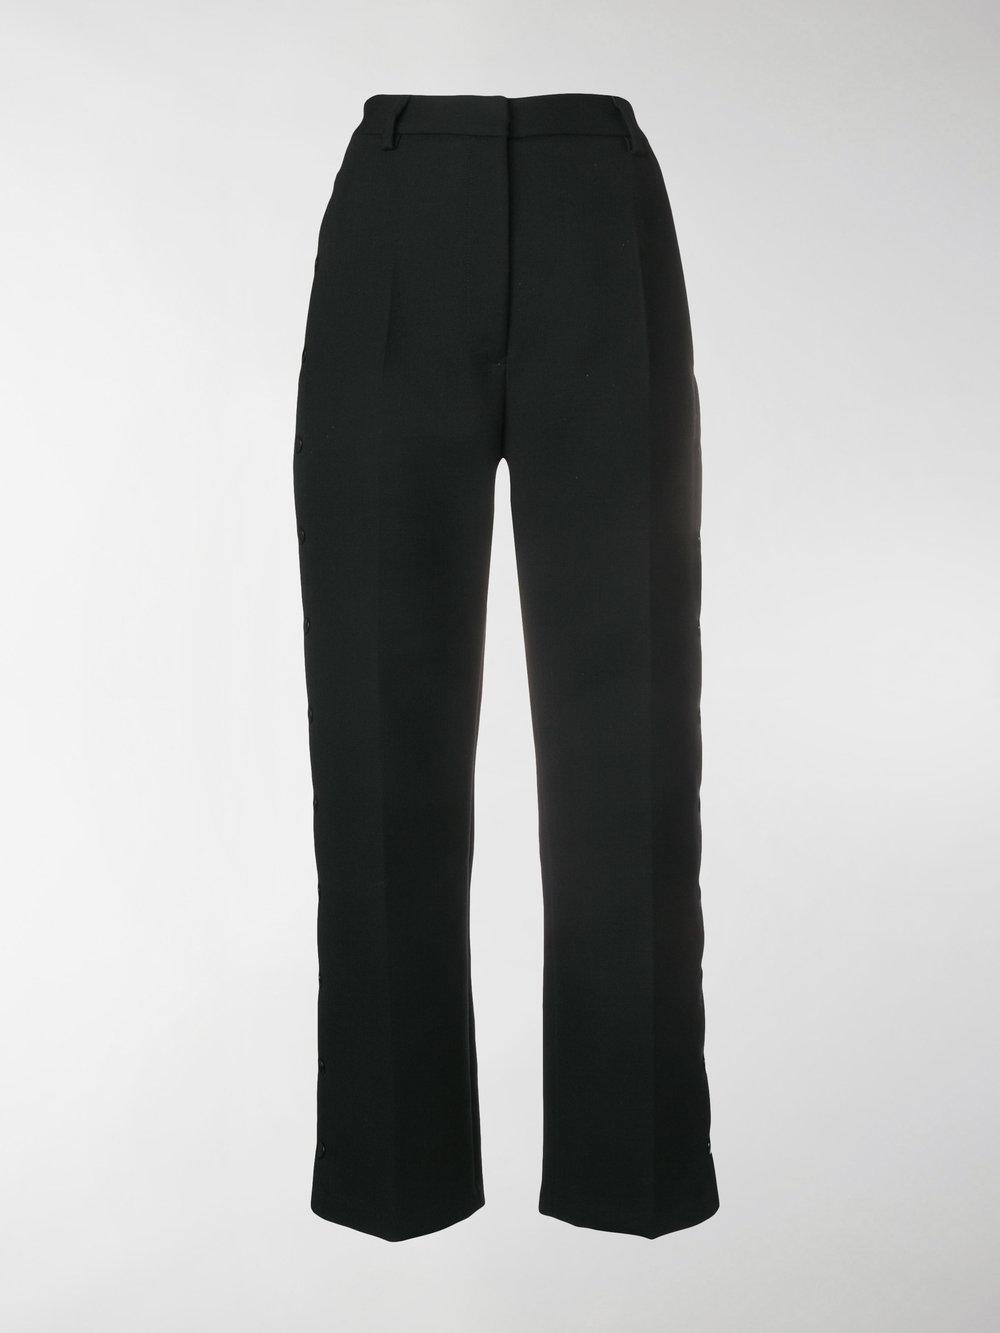 Release Dates Outlet Marketable snap-fastened tailored trousers - Black Maison Martin Margiela ka9g67